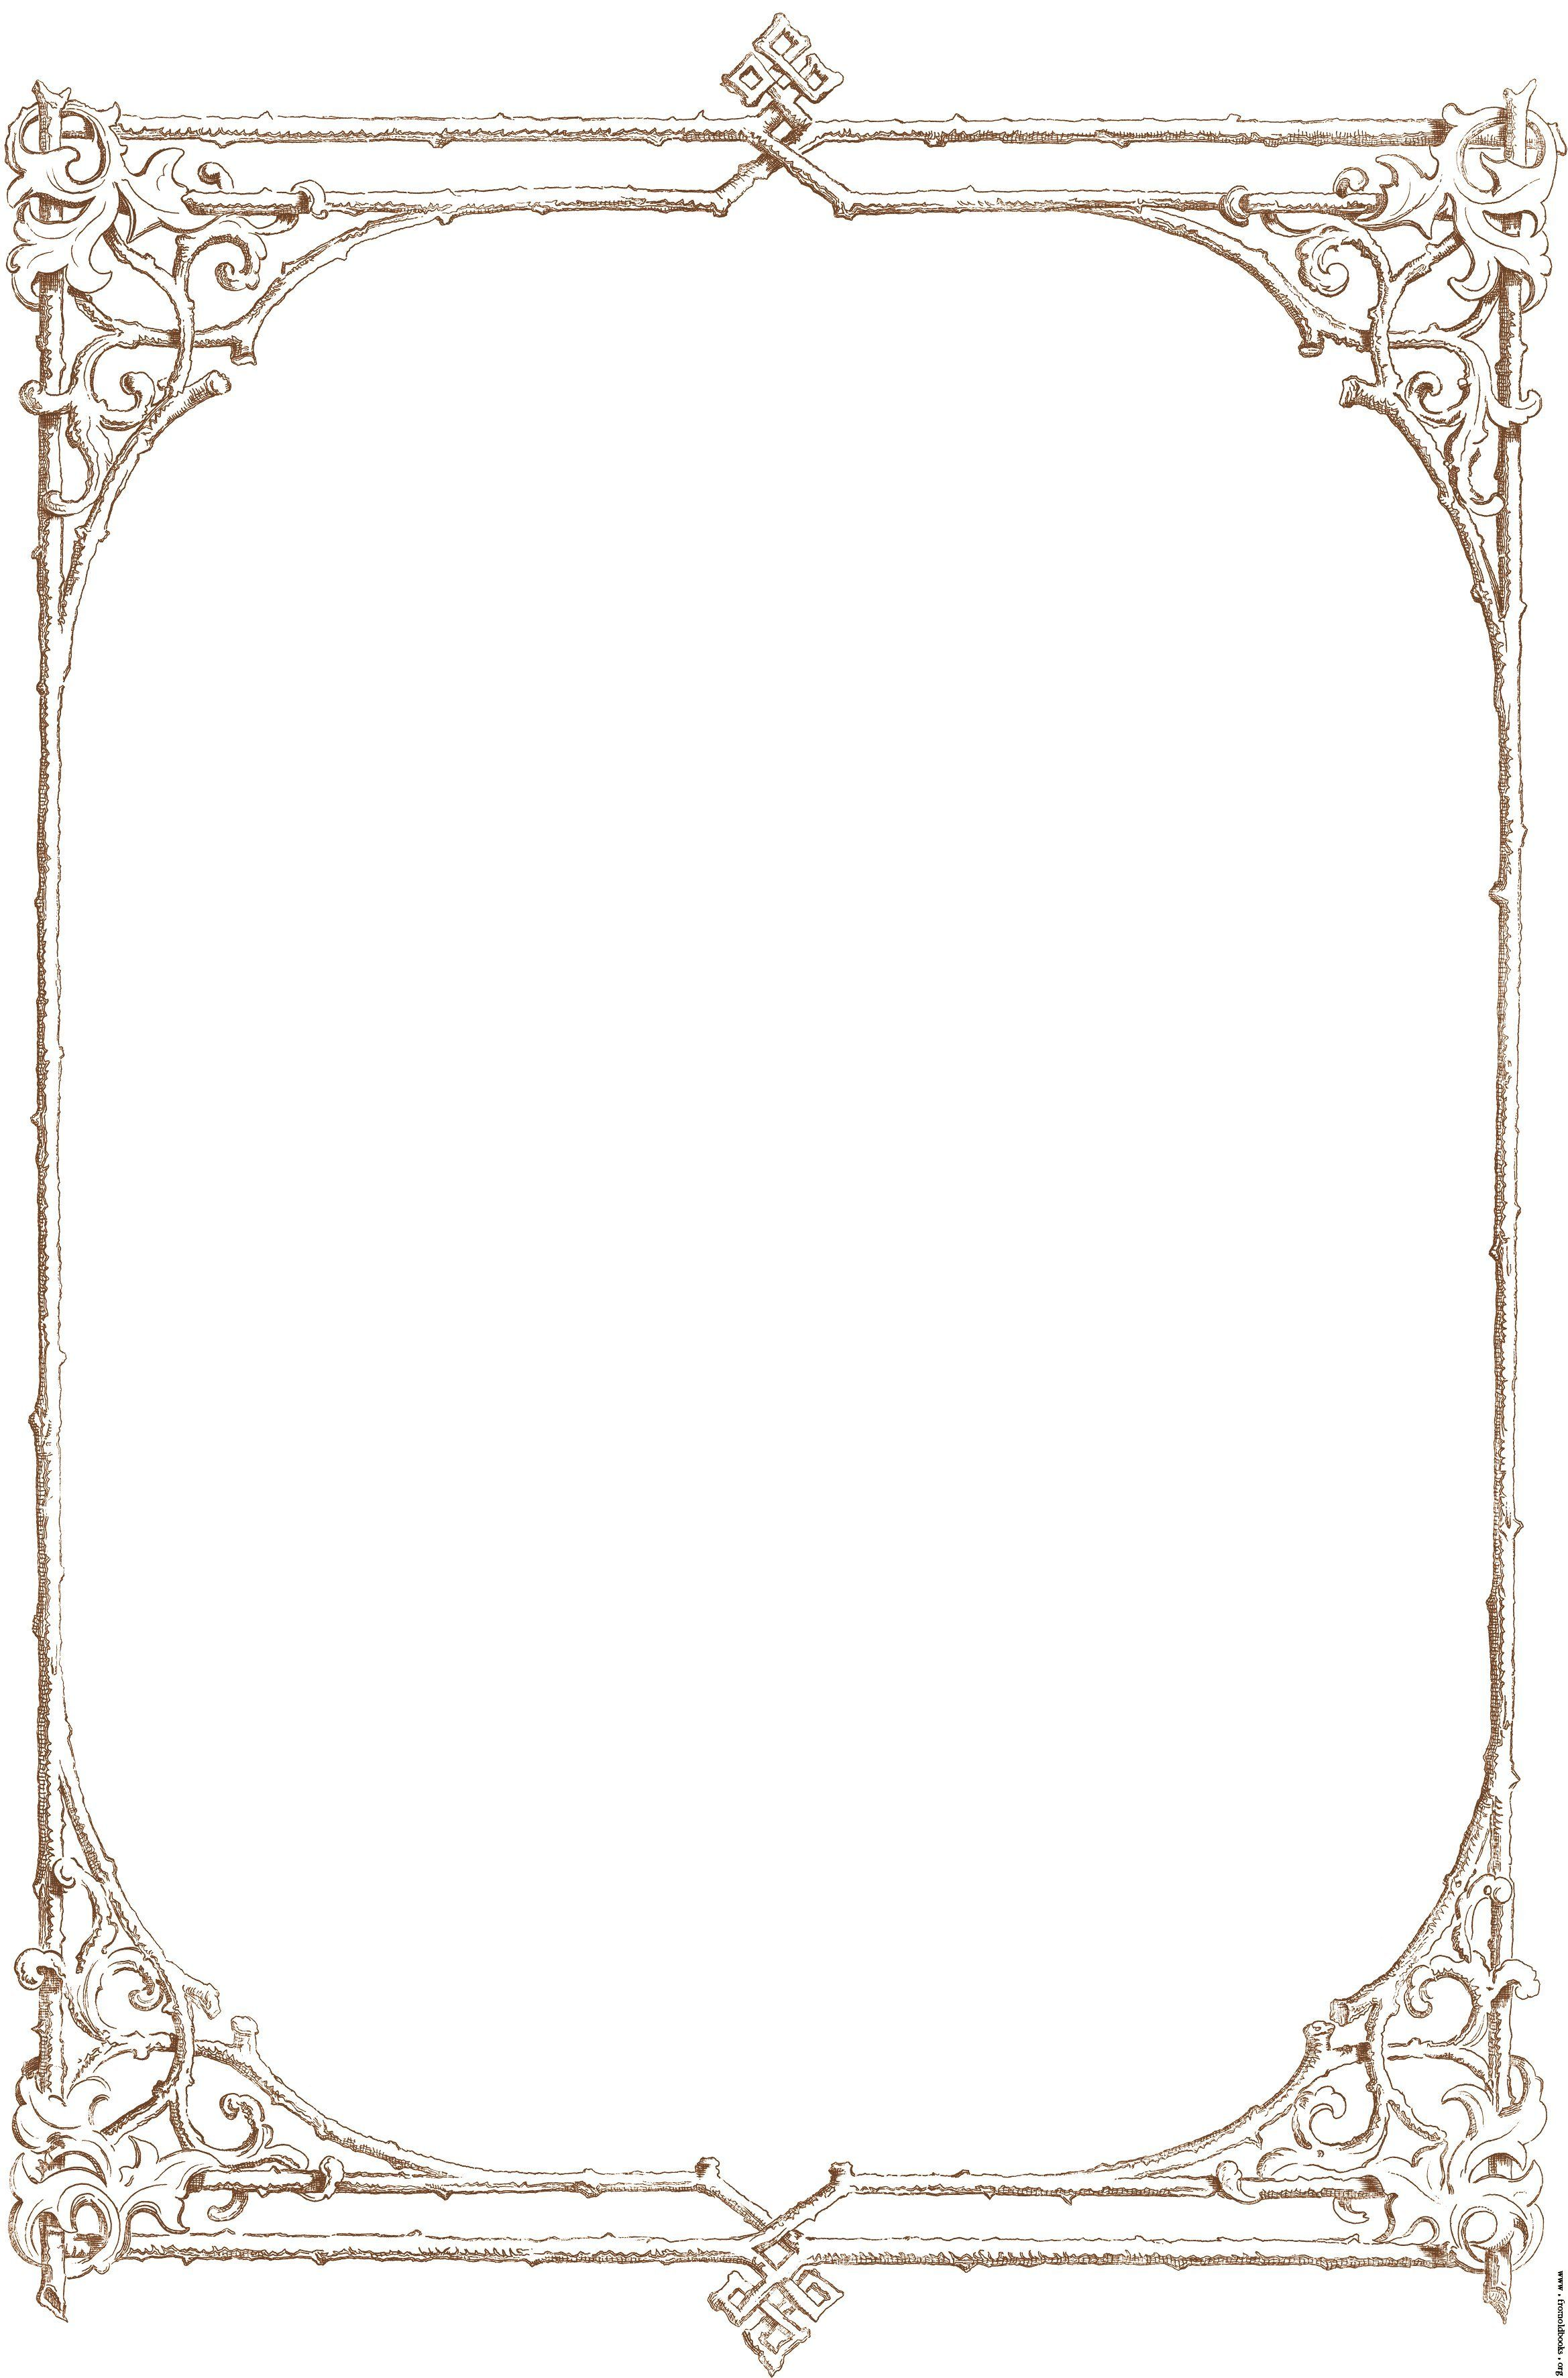 Victorian borders clipart clipart royalty free download Free Clip Art Victorian Border Of Brown Twigs Details ... clipart royalty free download